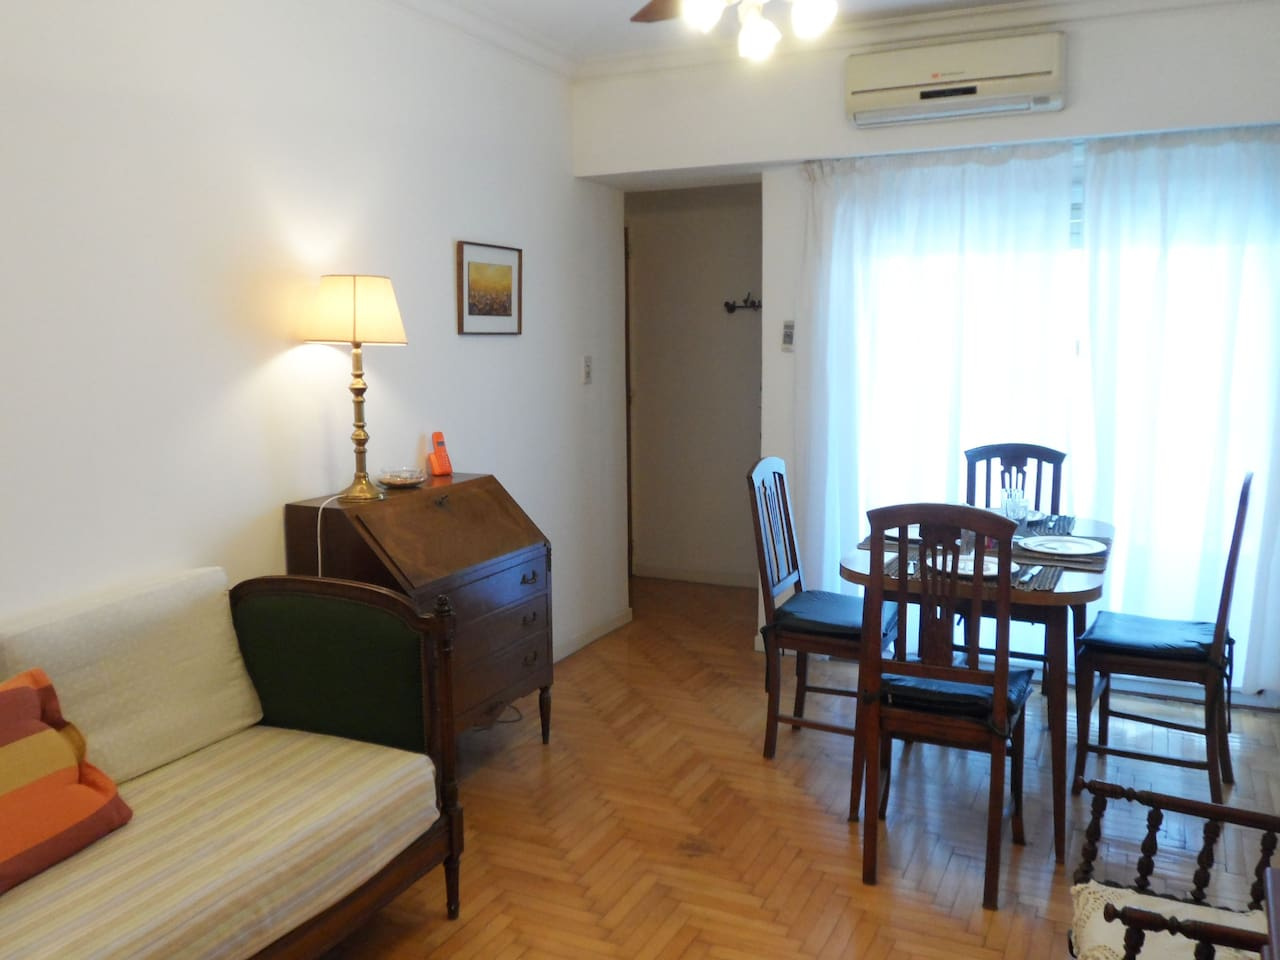 Cozy Apartment In San Telmo For 2 To 4 Guests Apartments For  # Muebles En Foz Do Iguacu